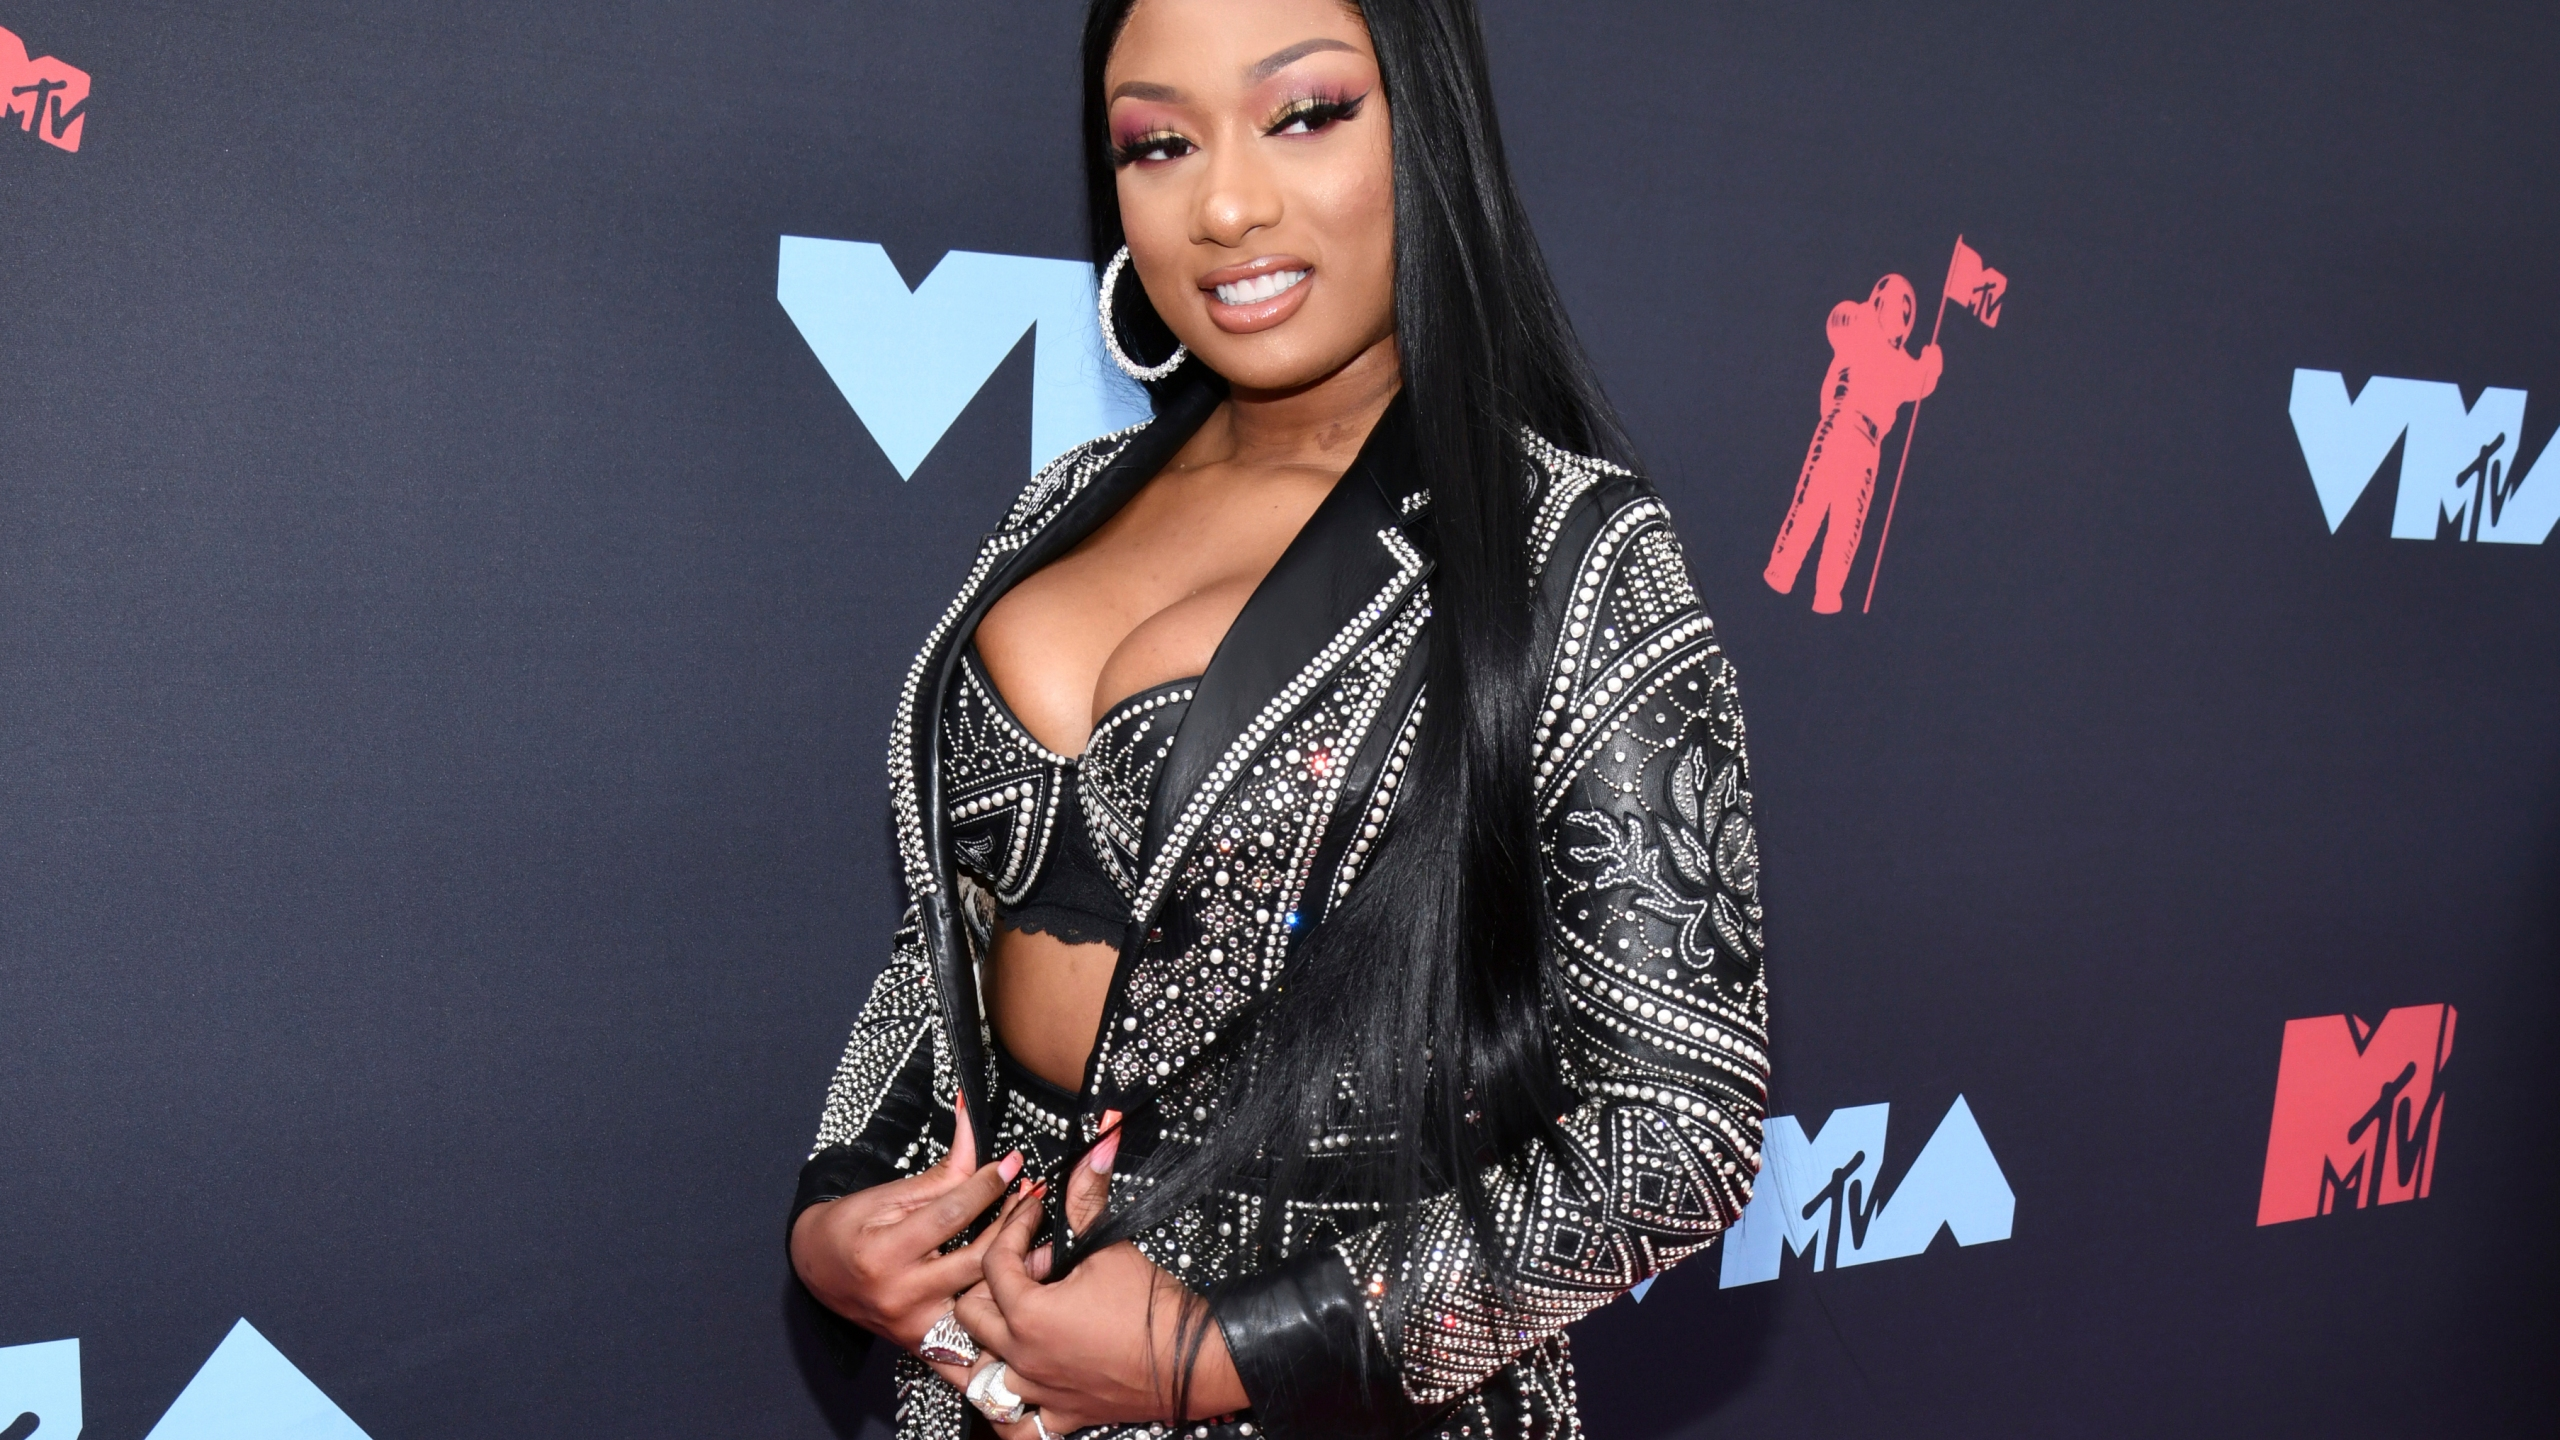 Megan Thee Stallion